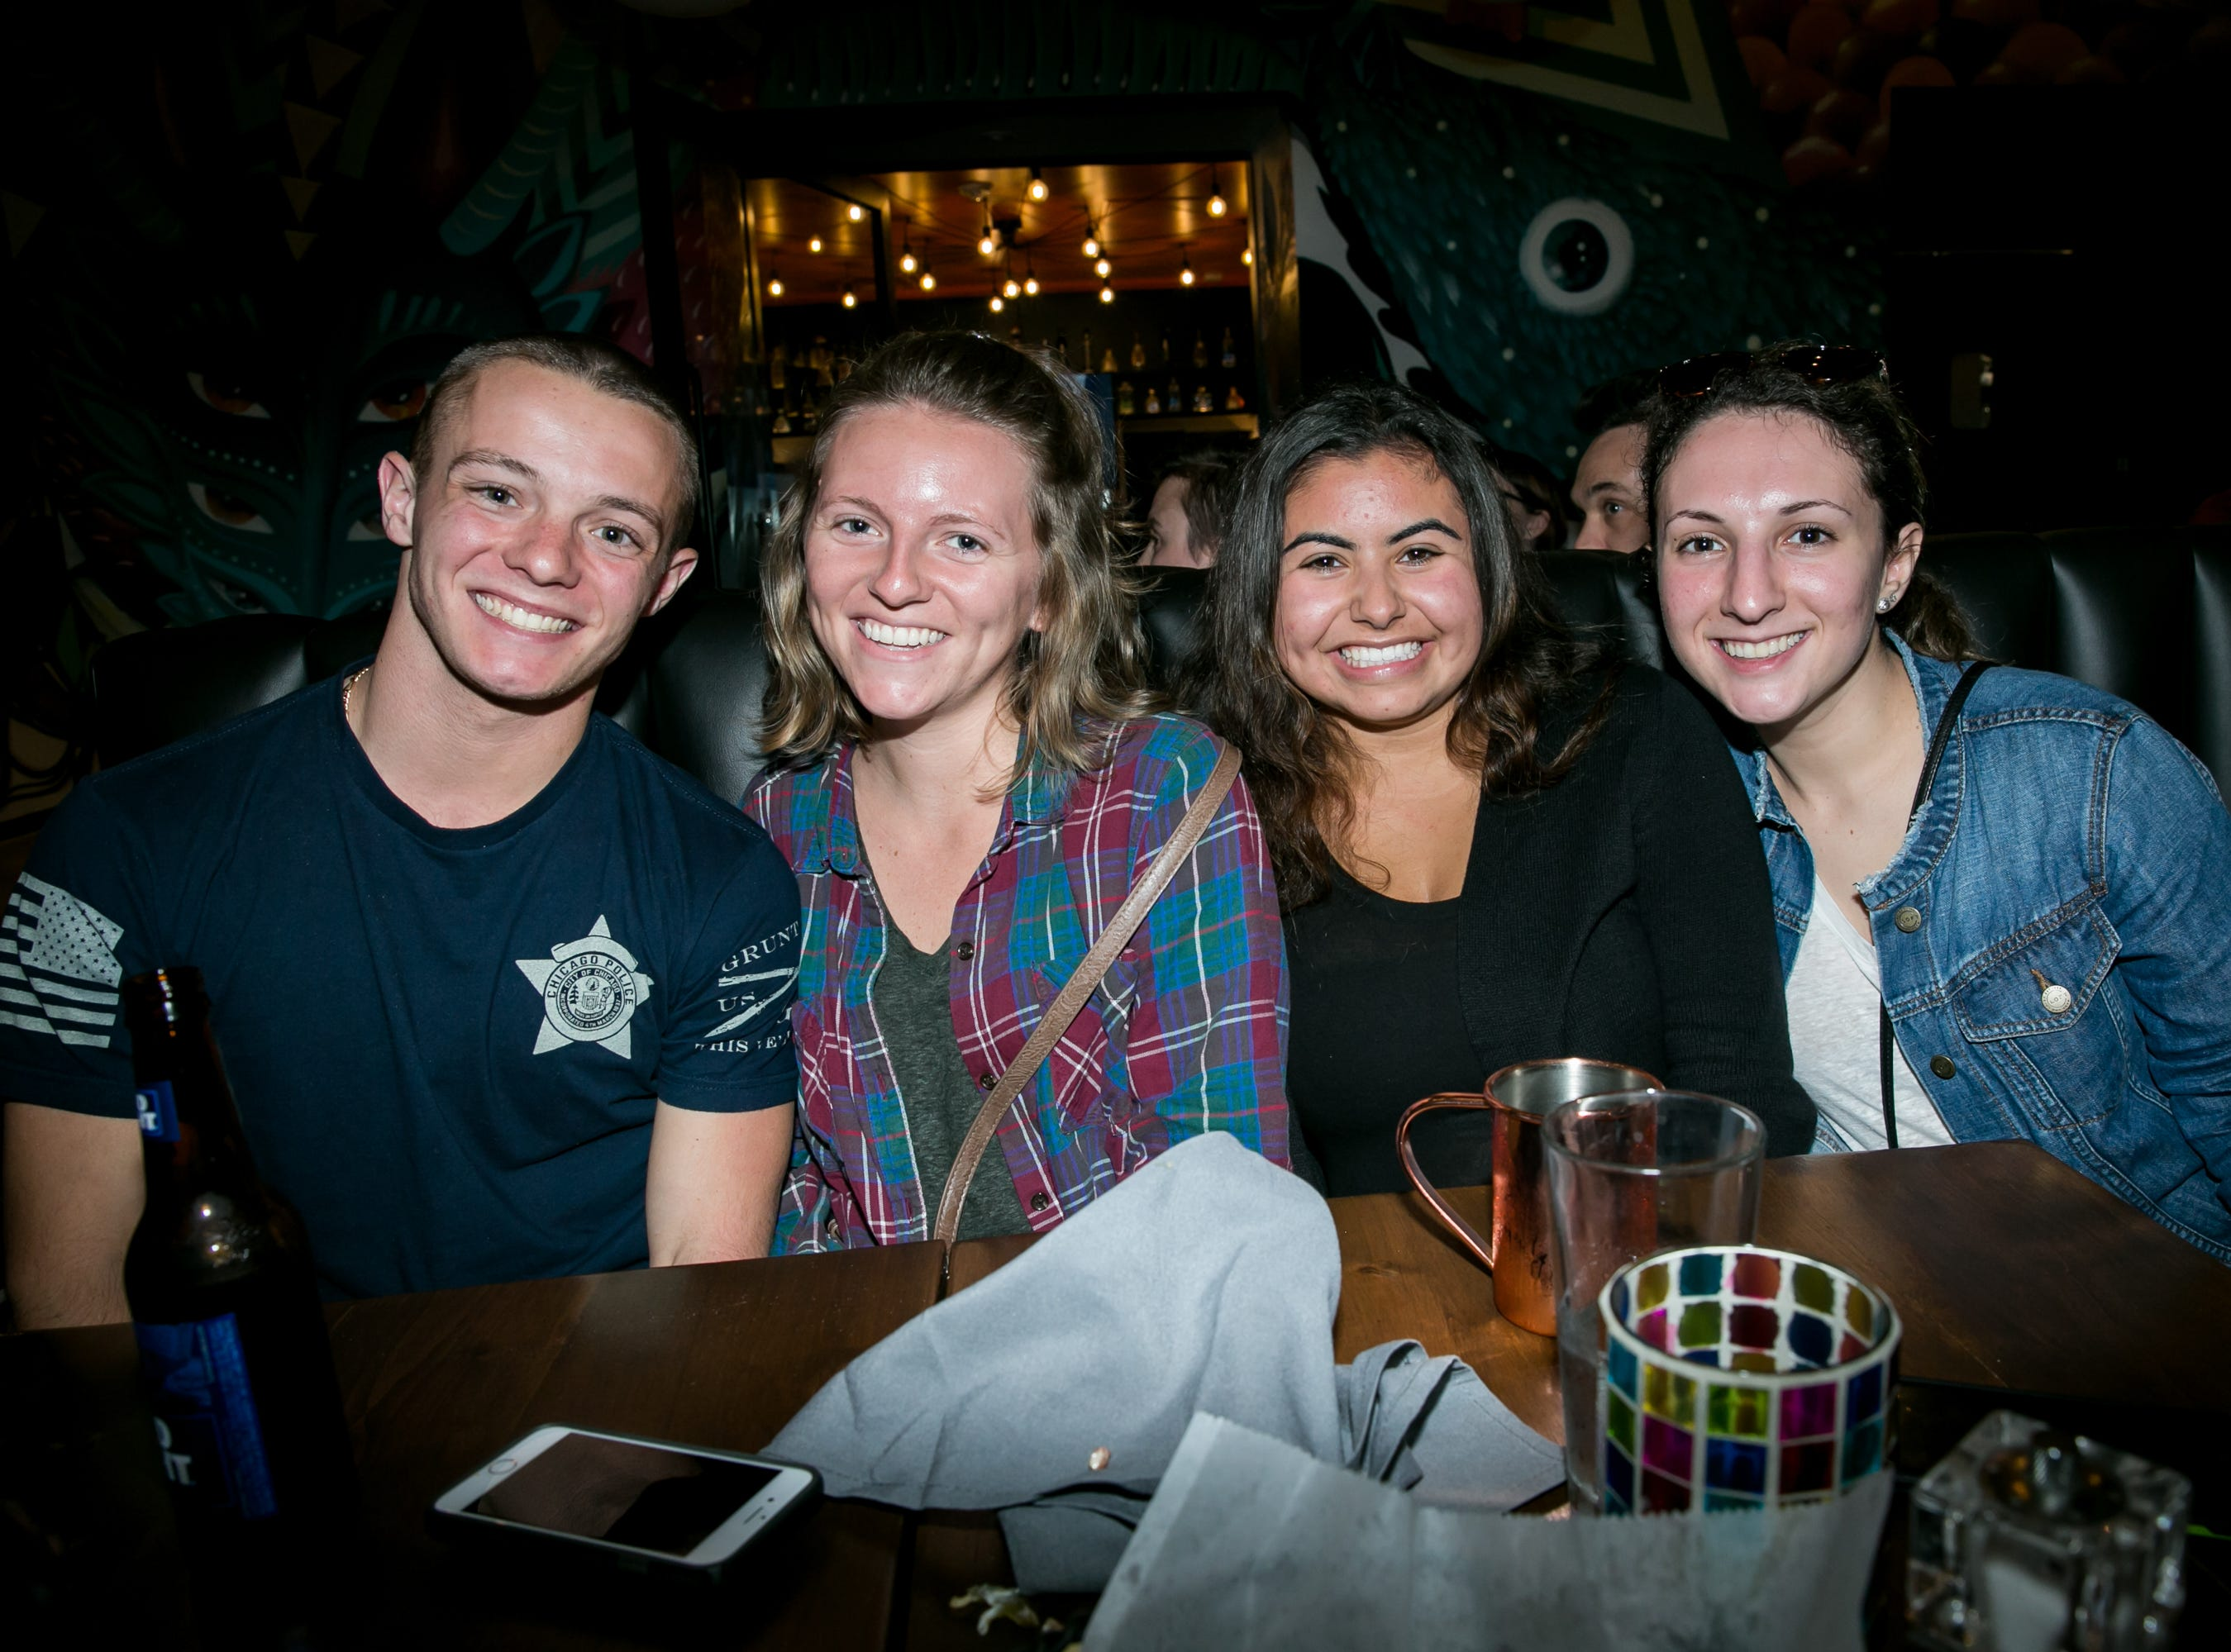 This group has a great time during Paz Cantina's Super Bowl Watch Party on Feb. 3, 2019.